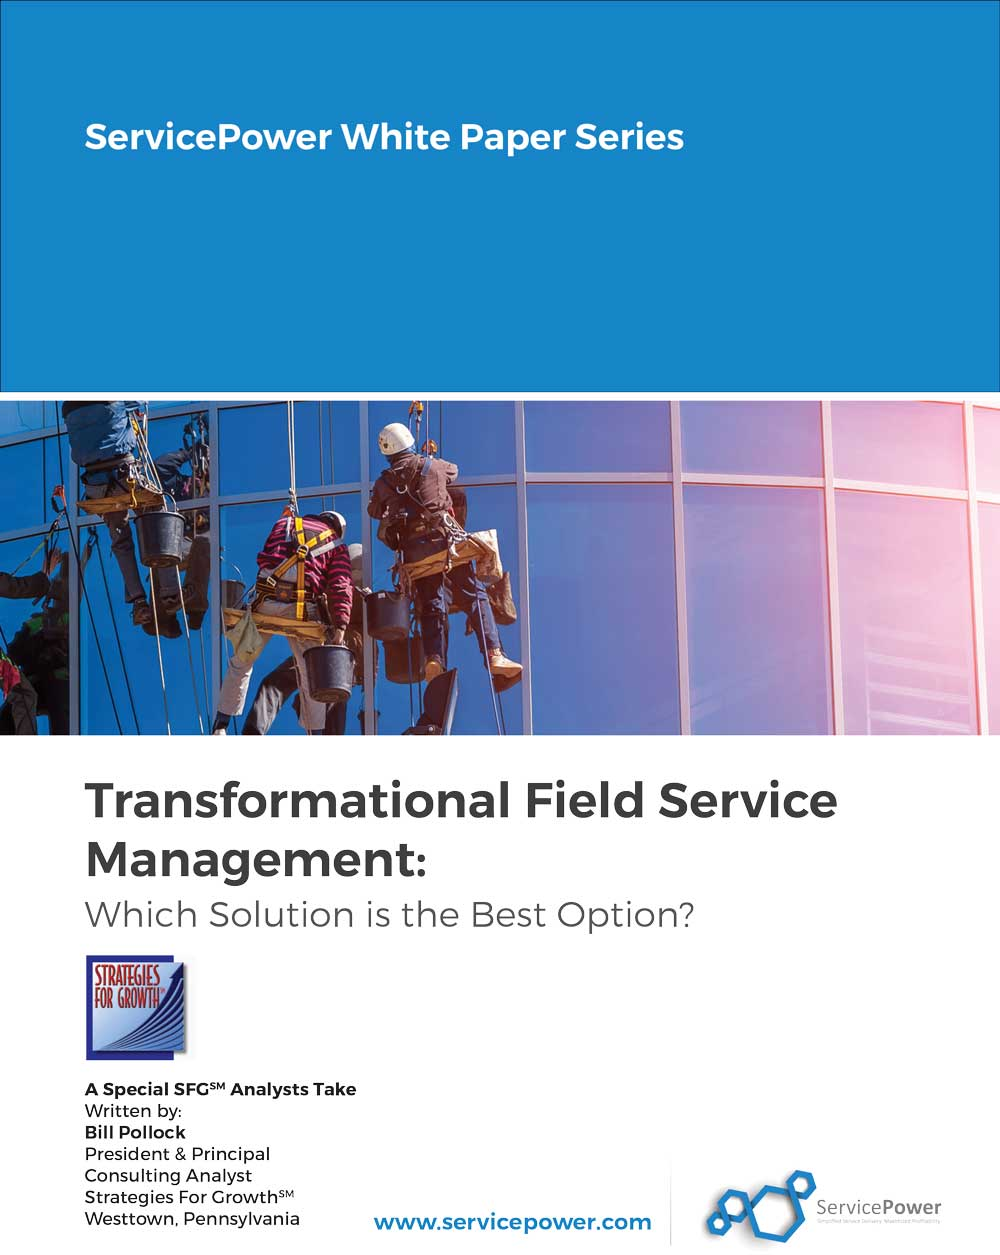 Transformational Field Service Management: Which Solution is the Best?